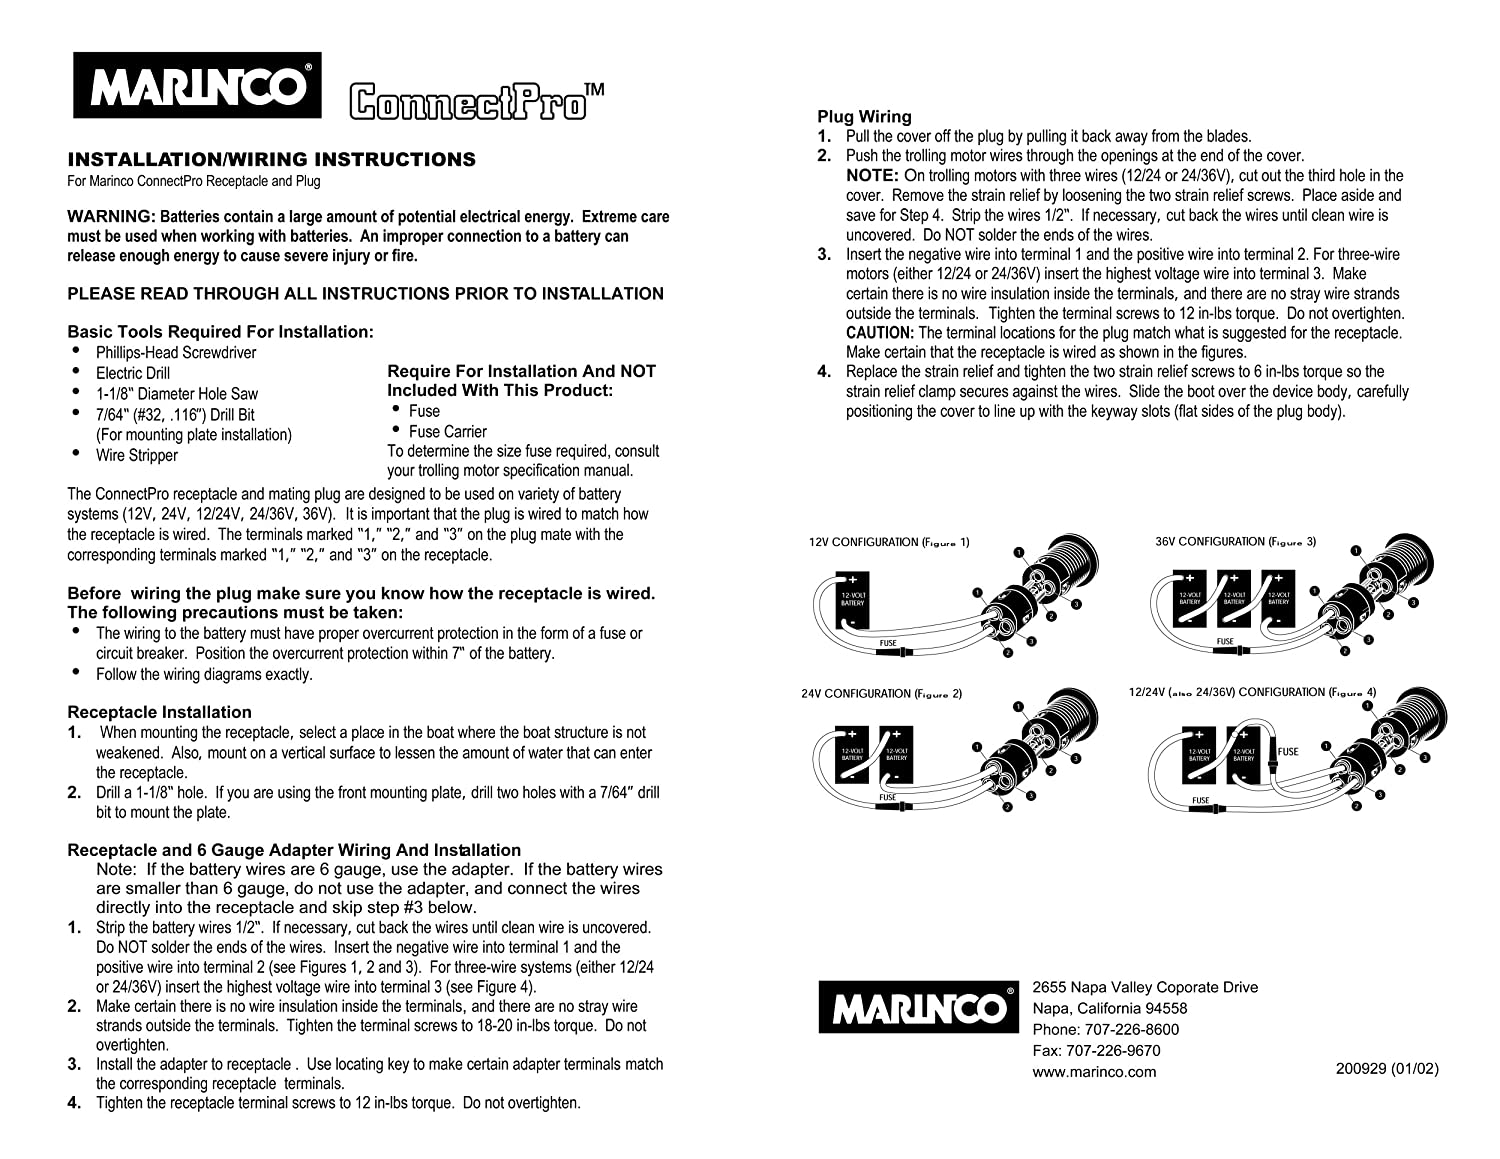 91ULQH2Yk6S._SL1500_ amazon com marinco 2 wire connectpro plug sports & outdoors marinco plug wiring diagram at bakdesigns.co